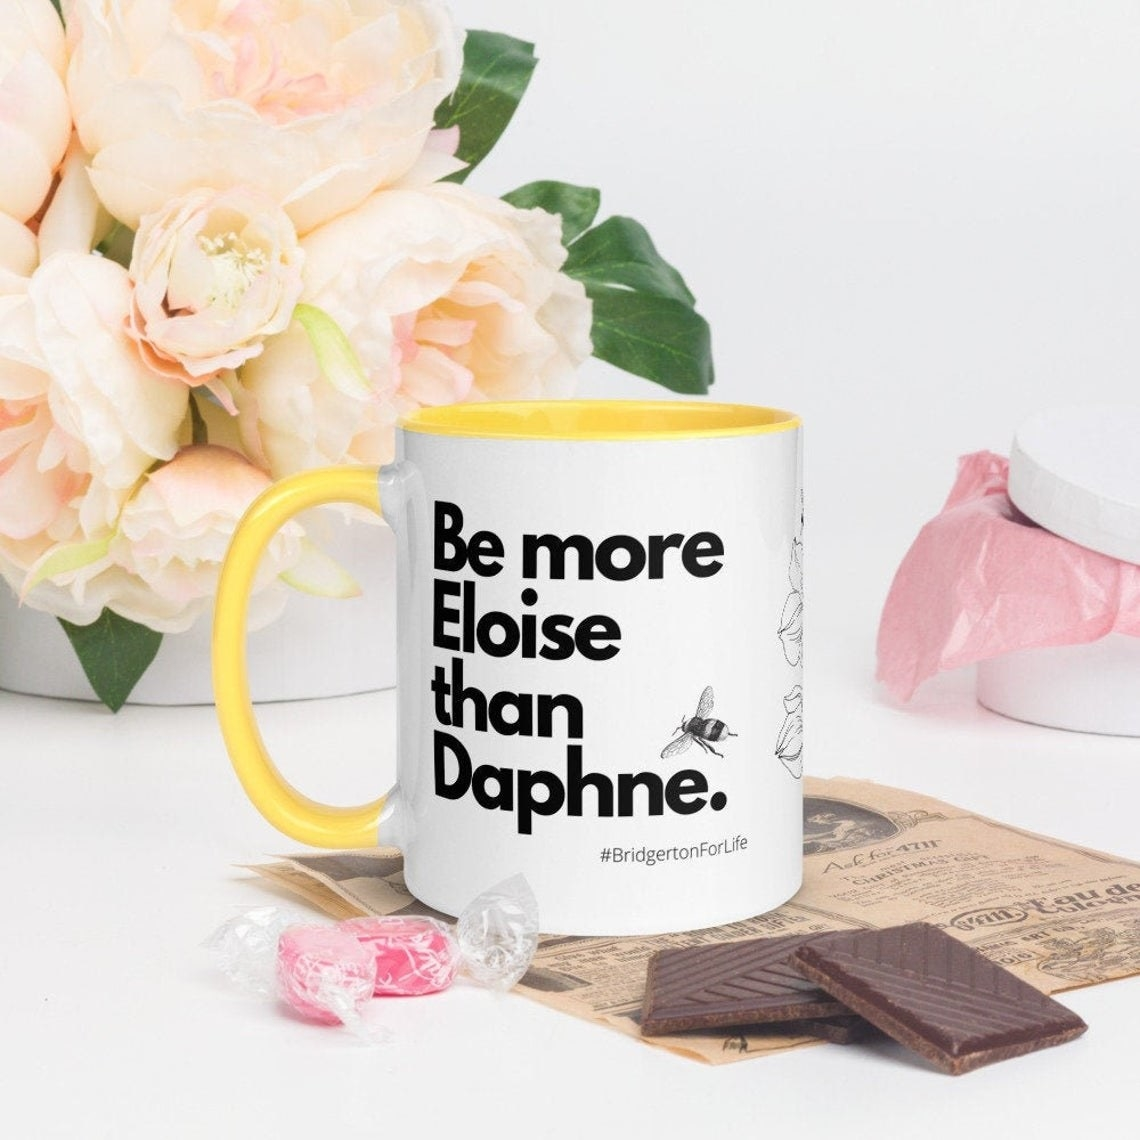 The mug surrounded by flowers and chocolate